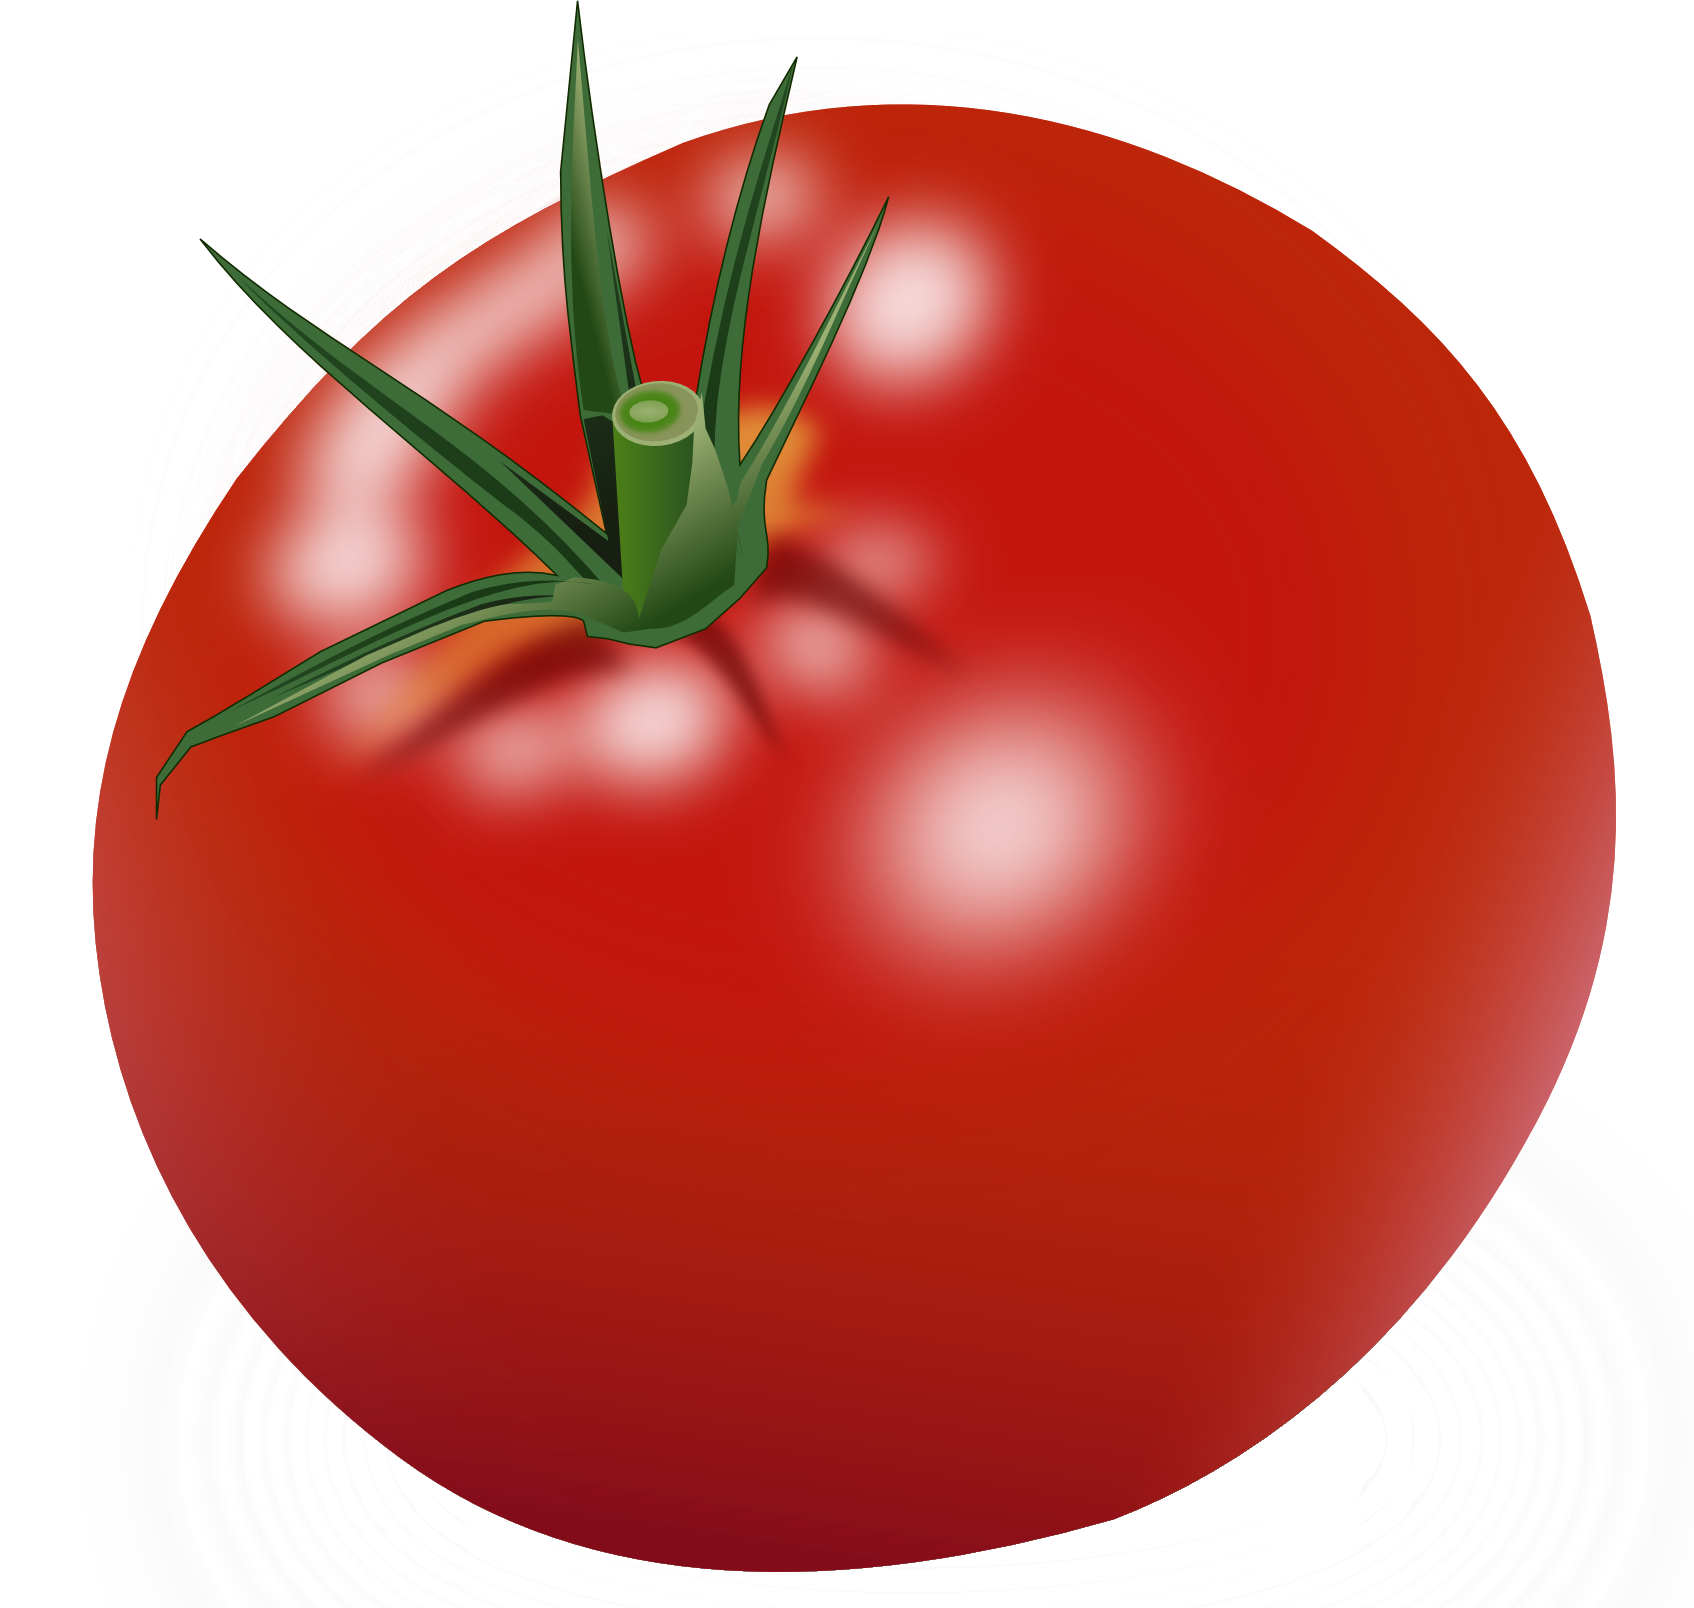 Png image transparent best. Tomatoes clipart tomato leaf